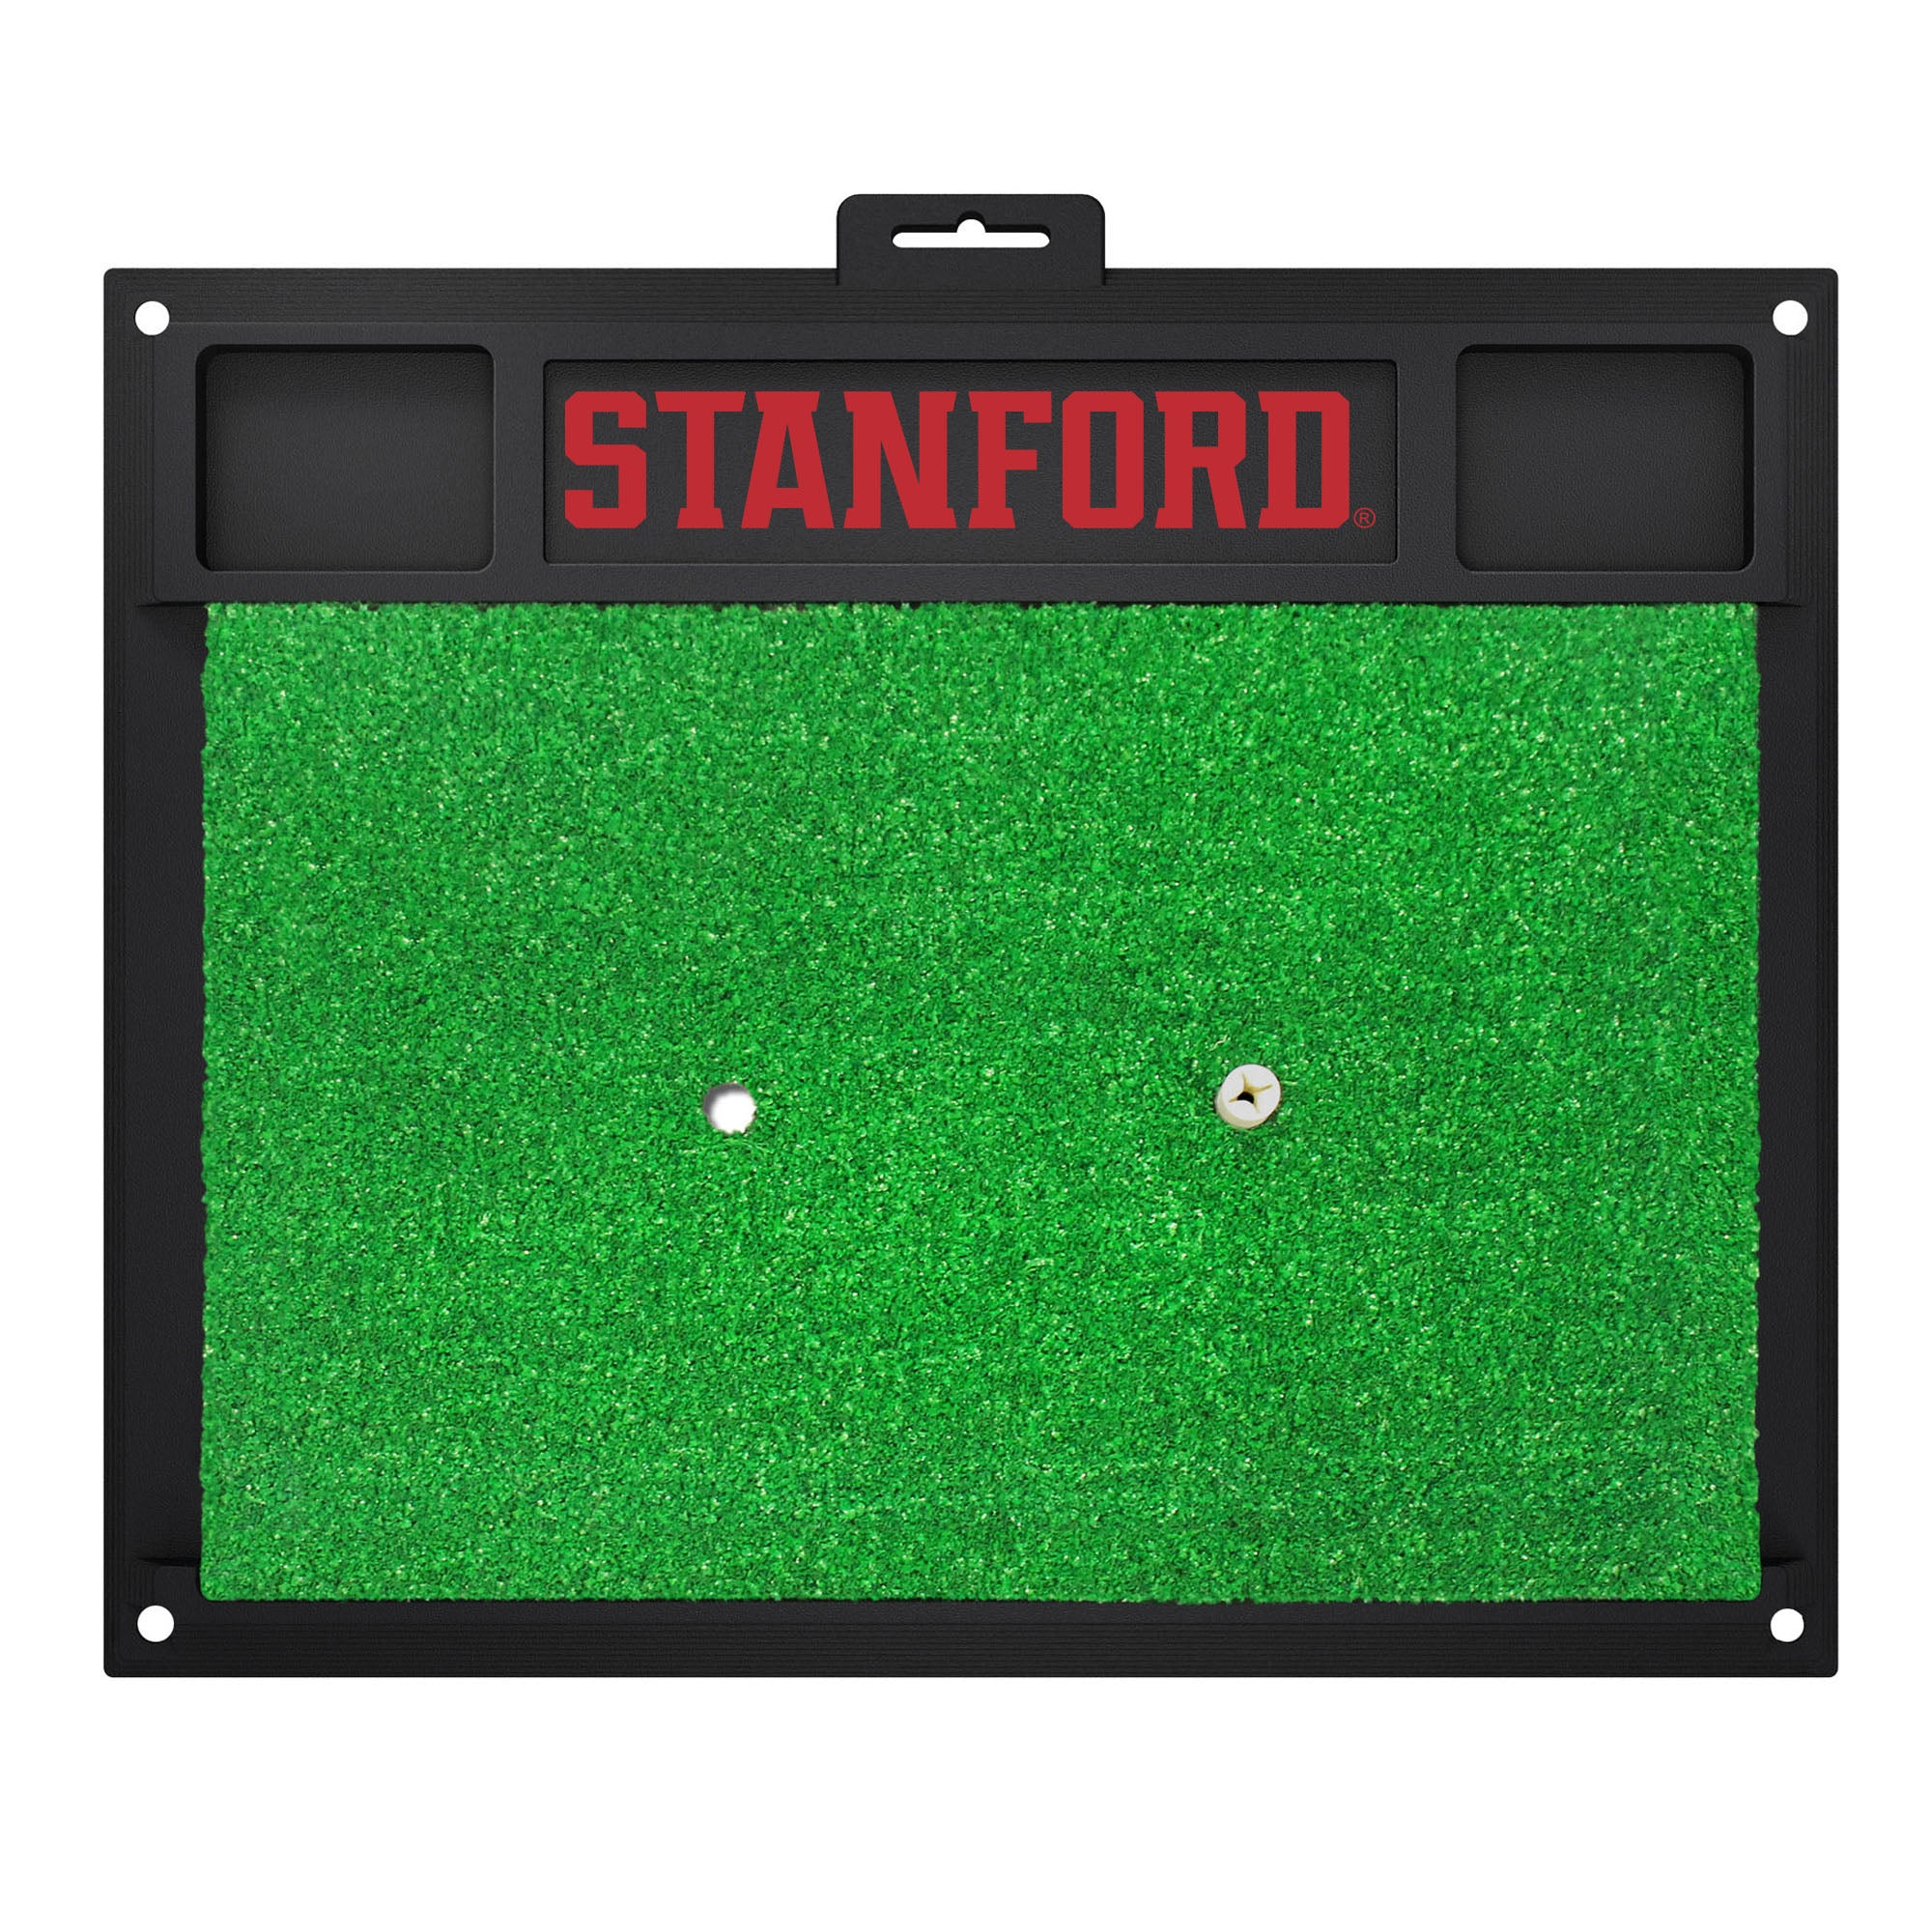 "Stanford University Golf Hitting Mat 20"" x 17"""